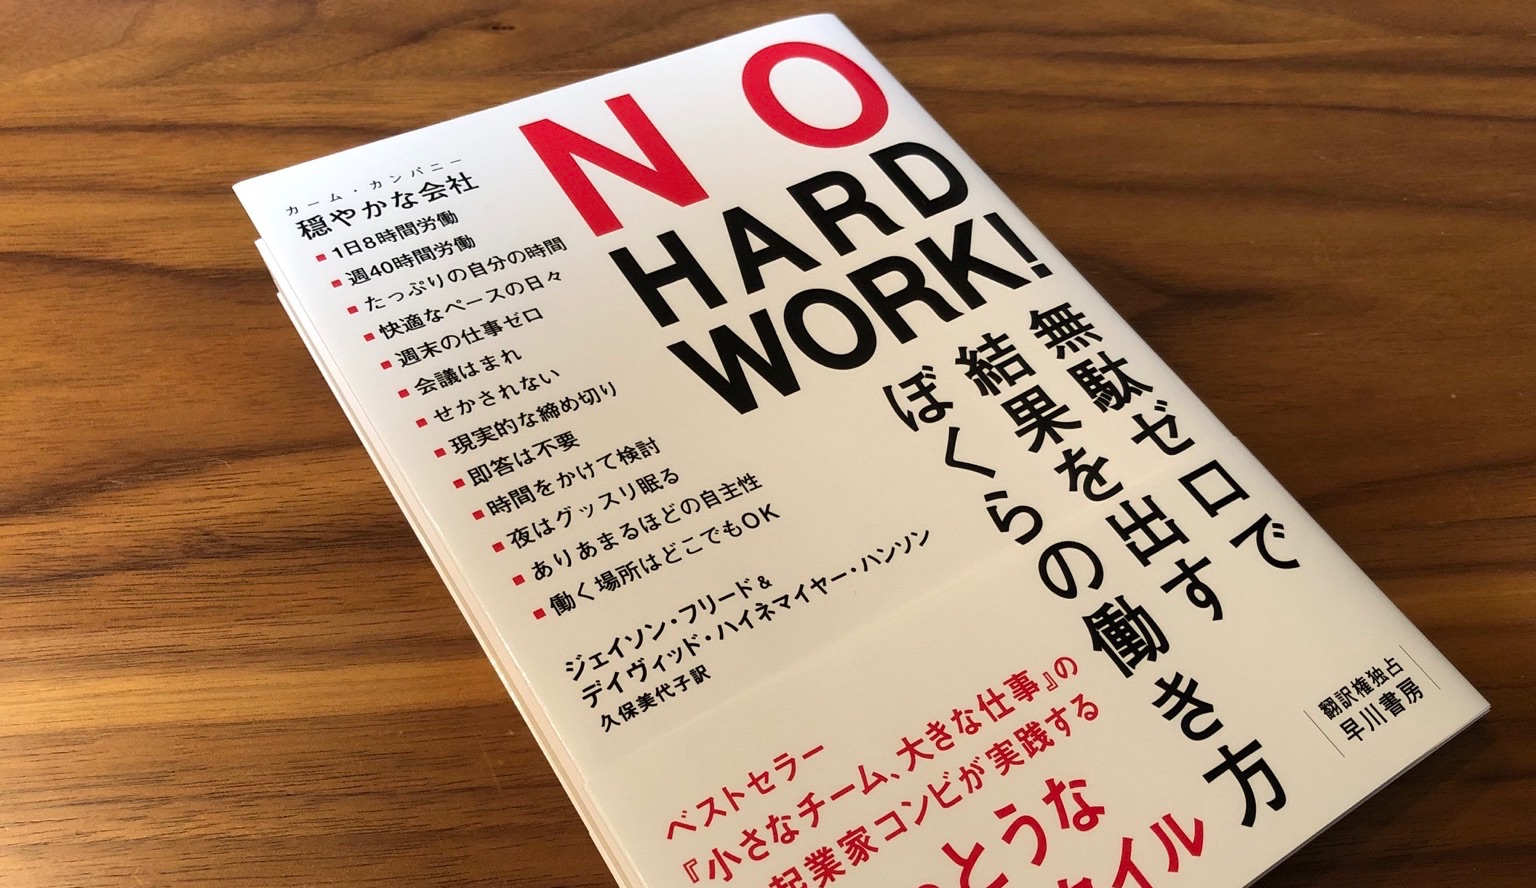 NO HARD WORK!